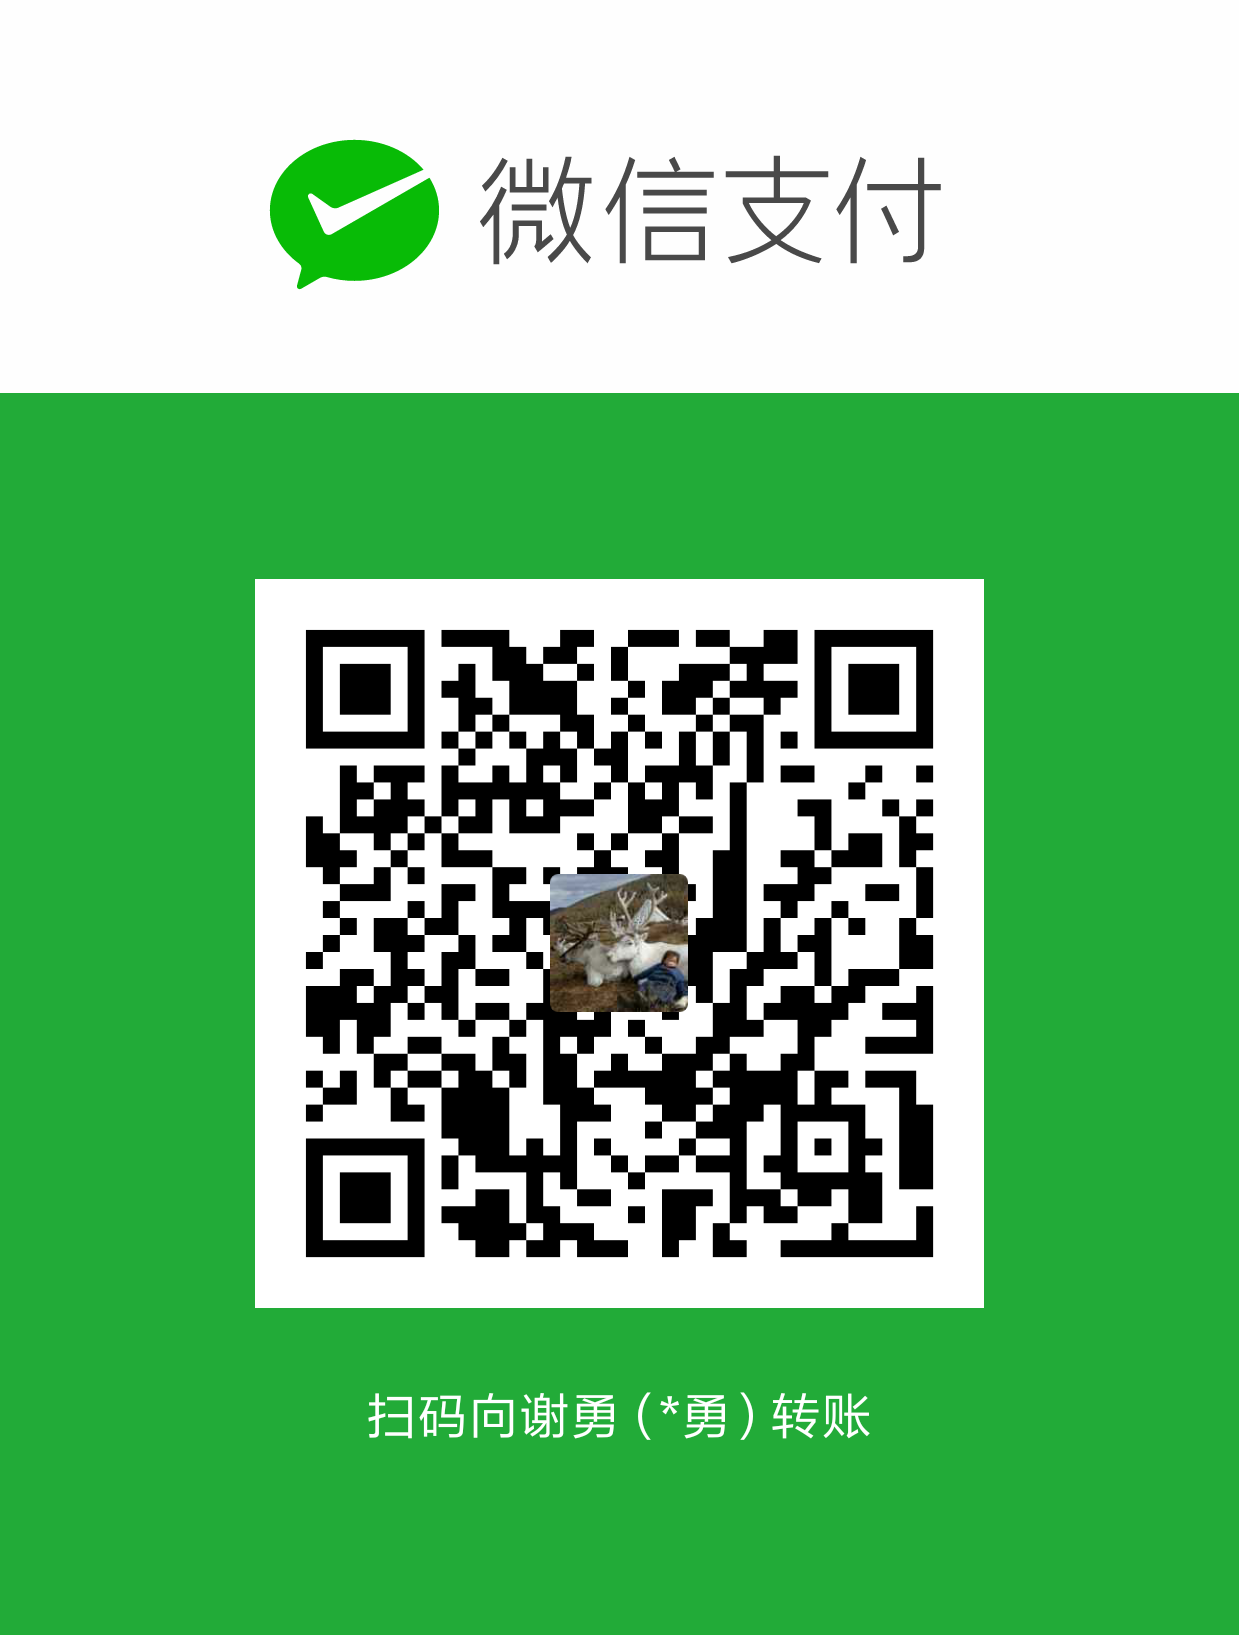 Eric Xie WeChat Pay